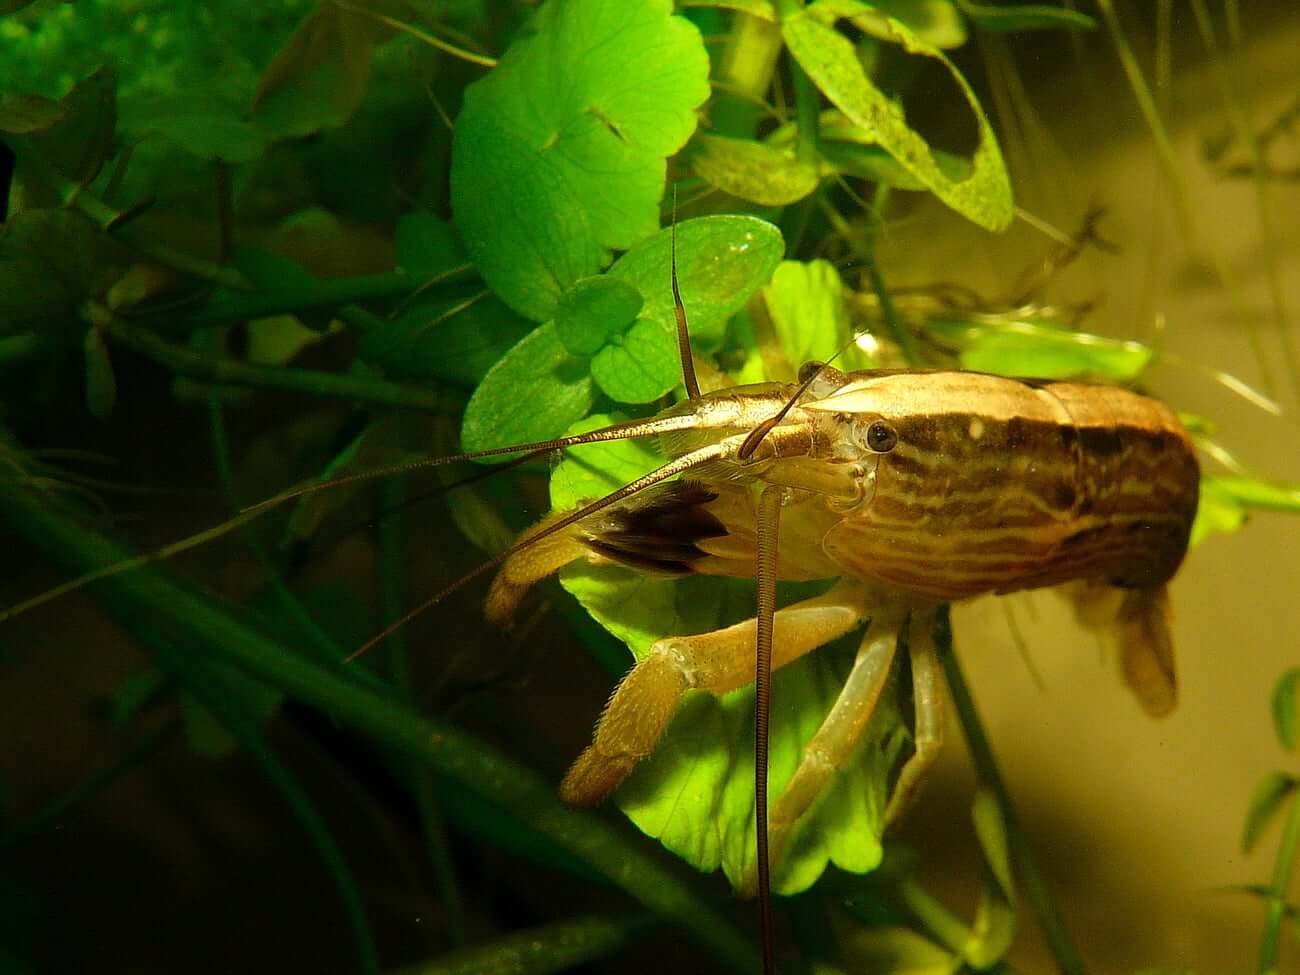 One Bamboo Shrimp sitting on a plant leaf